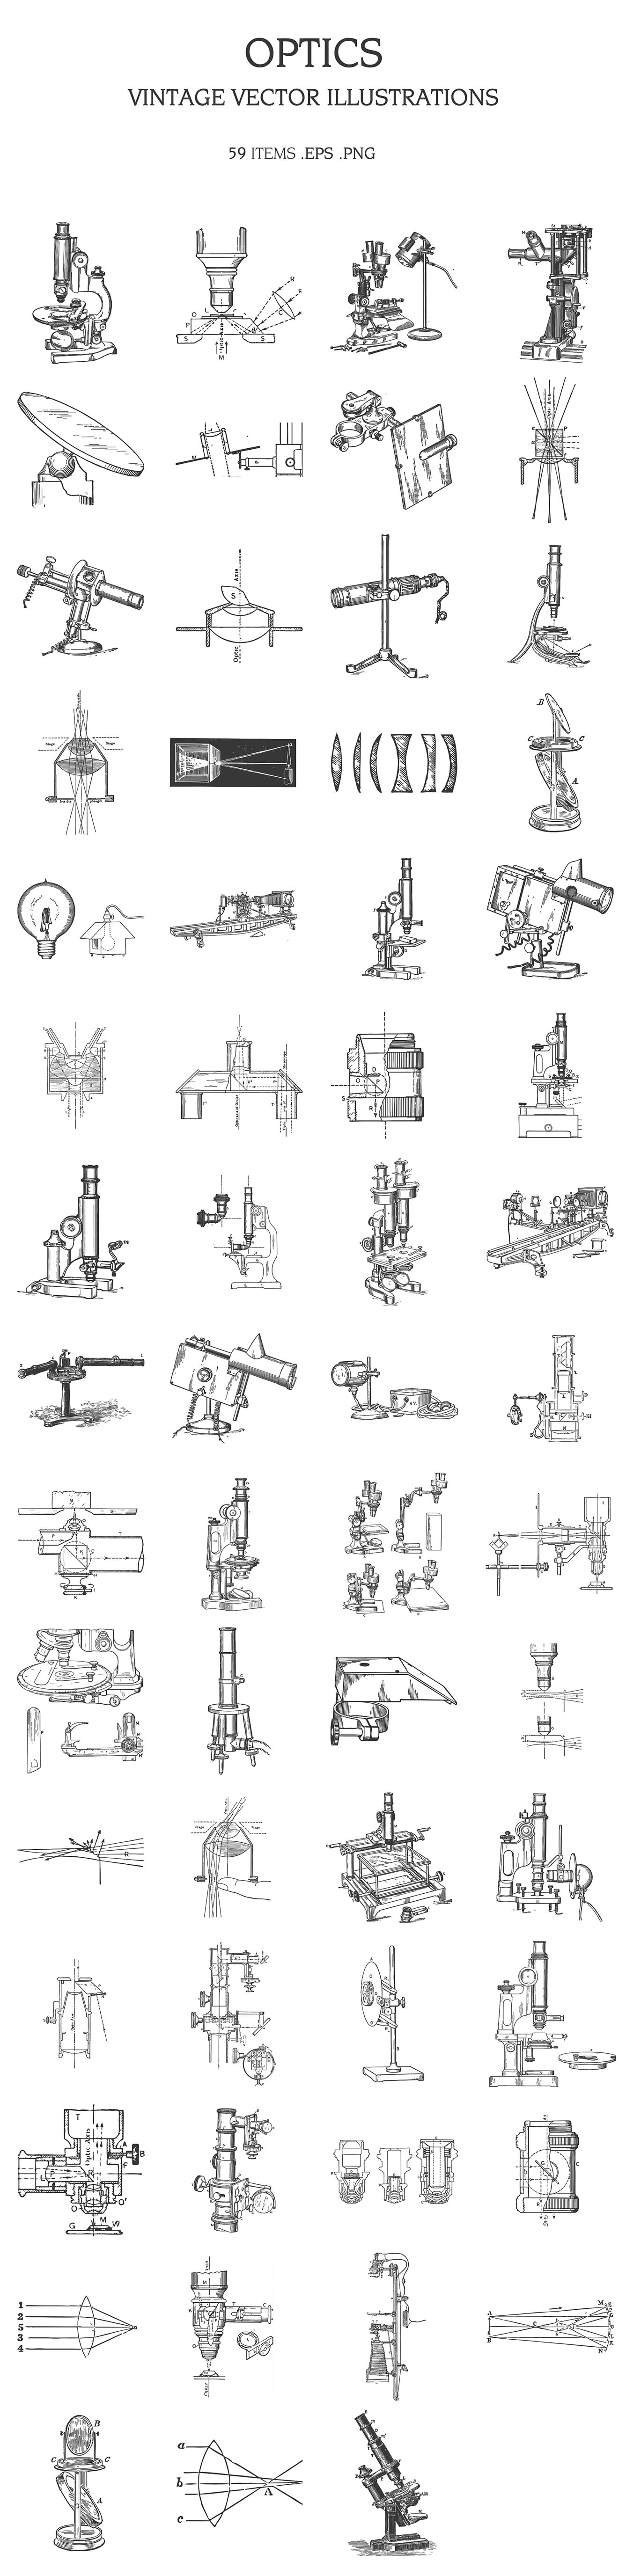 Optical devices - from the earliest to the most modern.